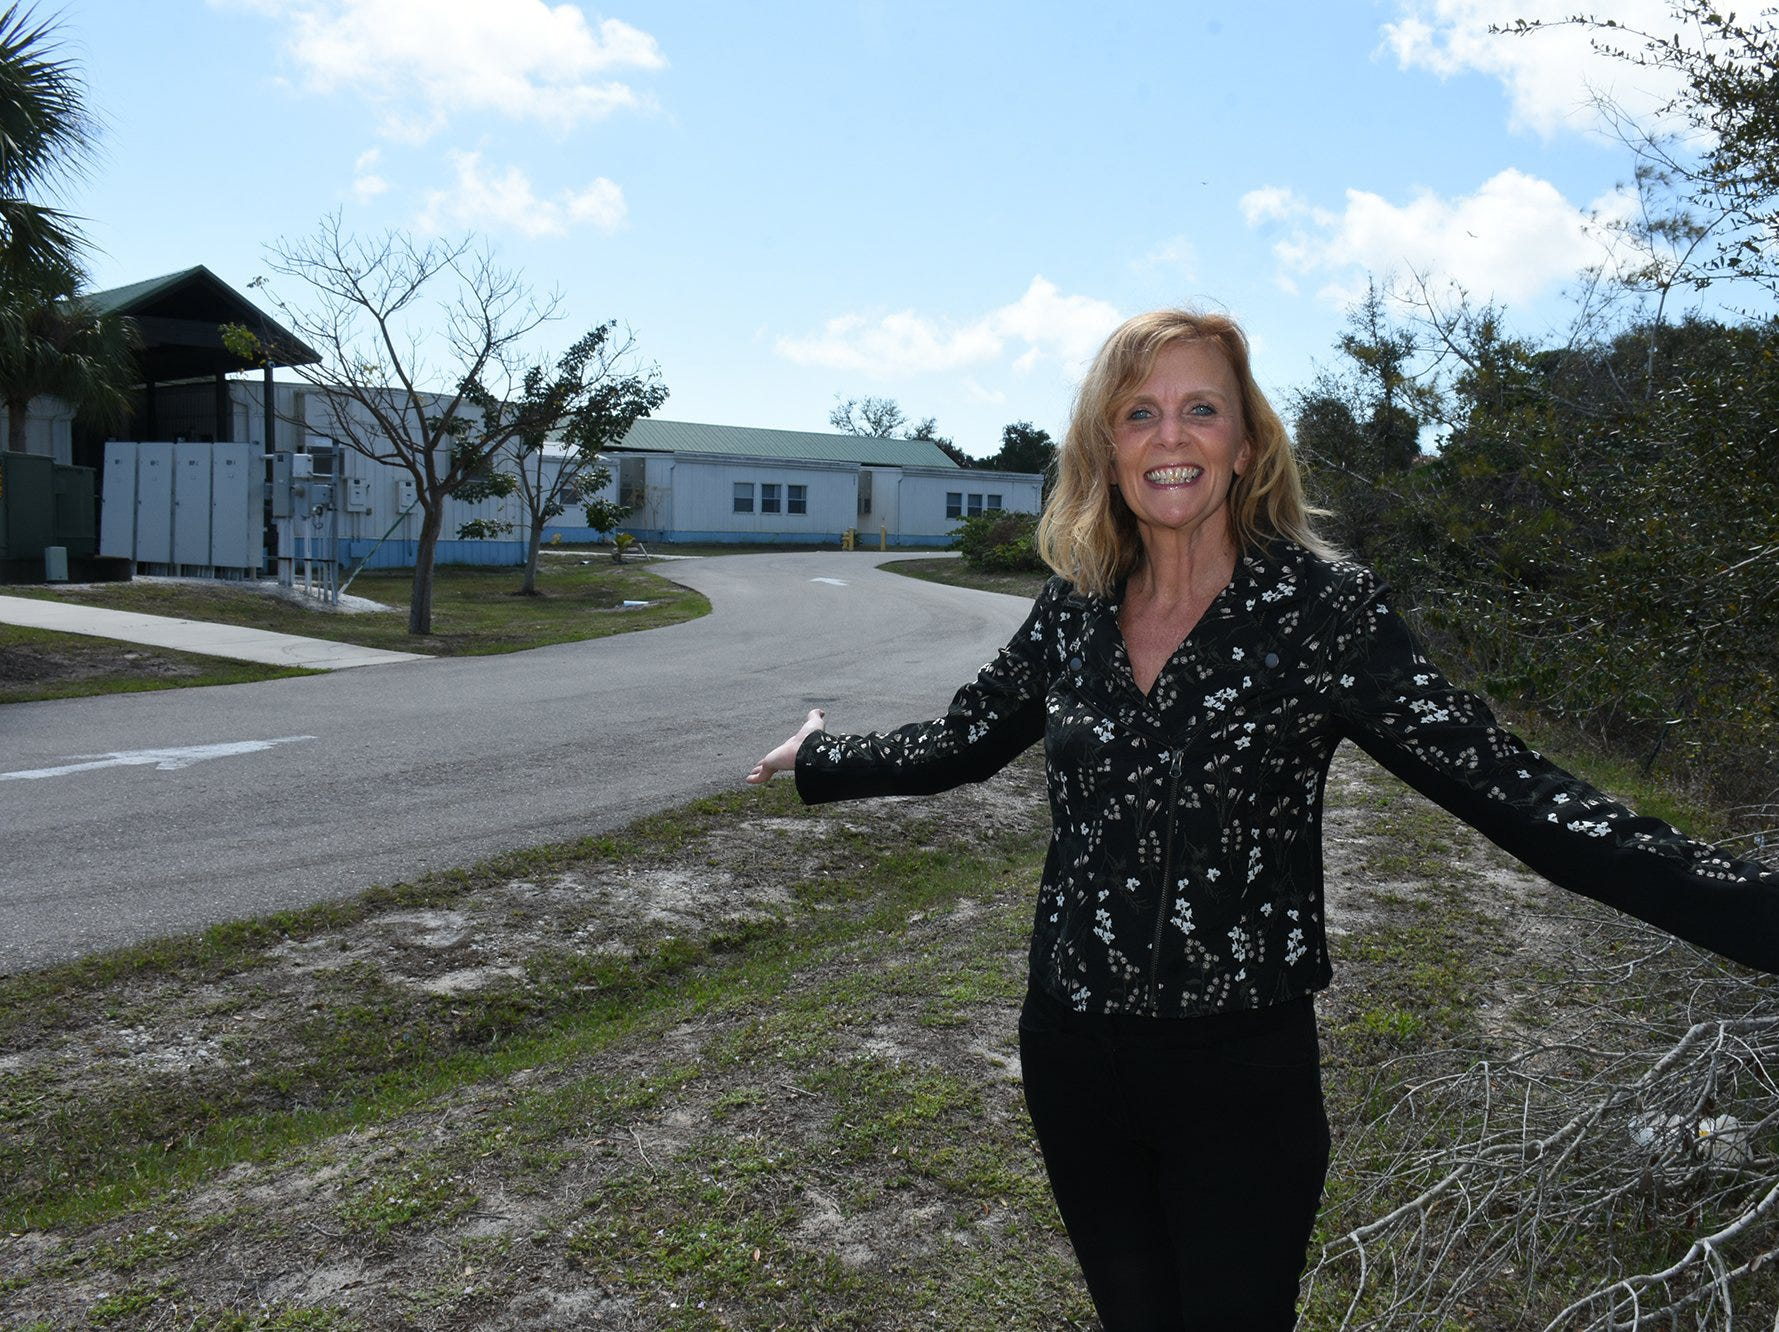 Principal Melissa Scott shows where the school's new buildings will rise. Marco Island Academy is embarking on a capital campaign to raise millions of dollars and give the school a permanent home, after years of operating in prefab modules.